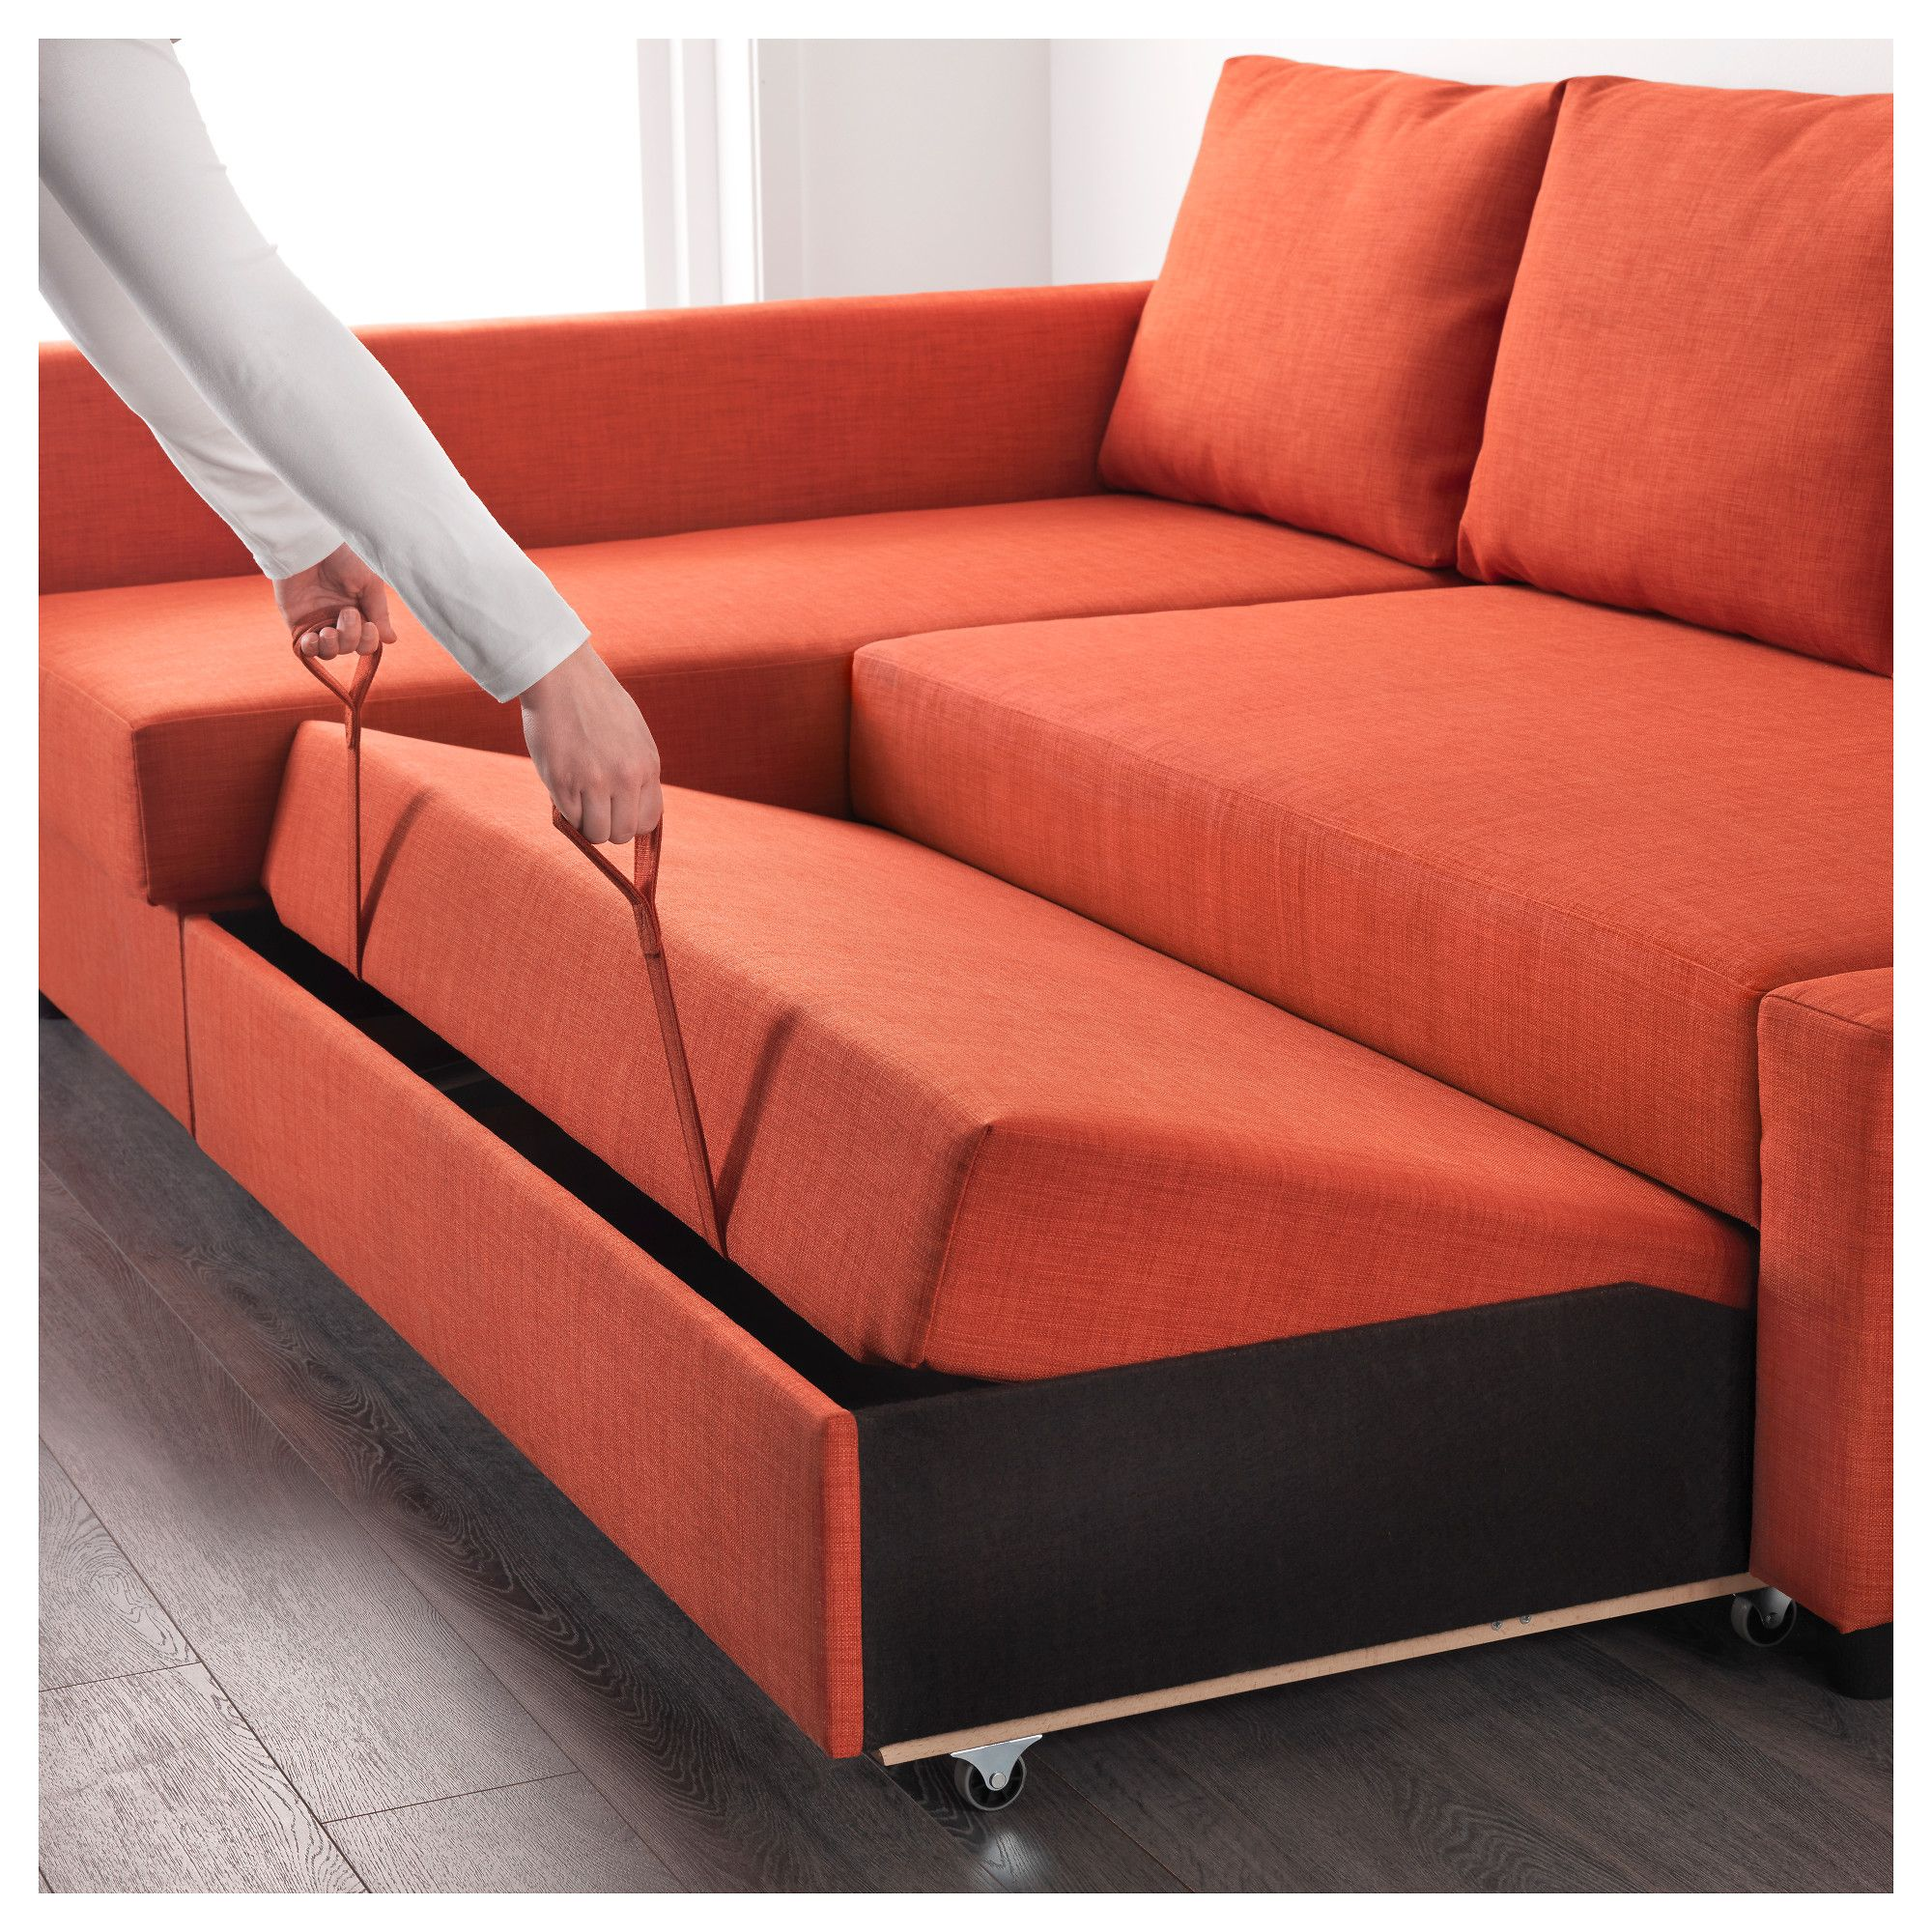 Bettsofa Ikea Friheten Ikea Friheten Corner Sofa Bed With Storage Skiftebo Dark Orange